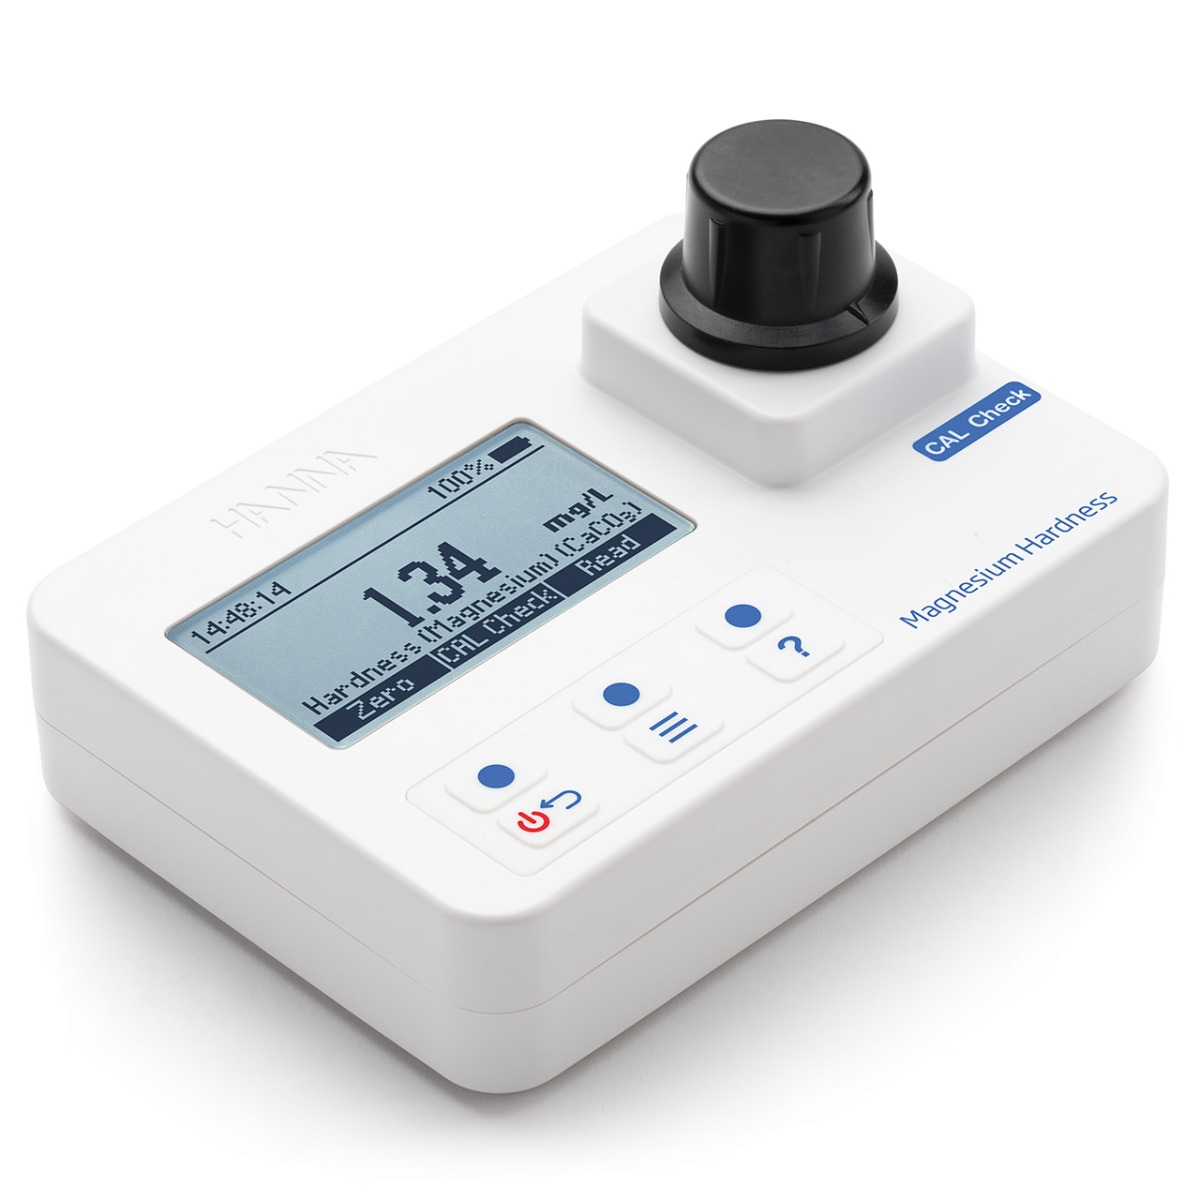 Magnesium Hardness Portable Photometer with CAL Check – HI97719